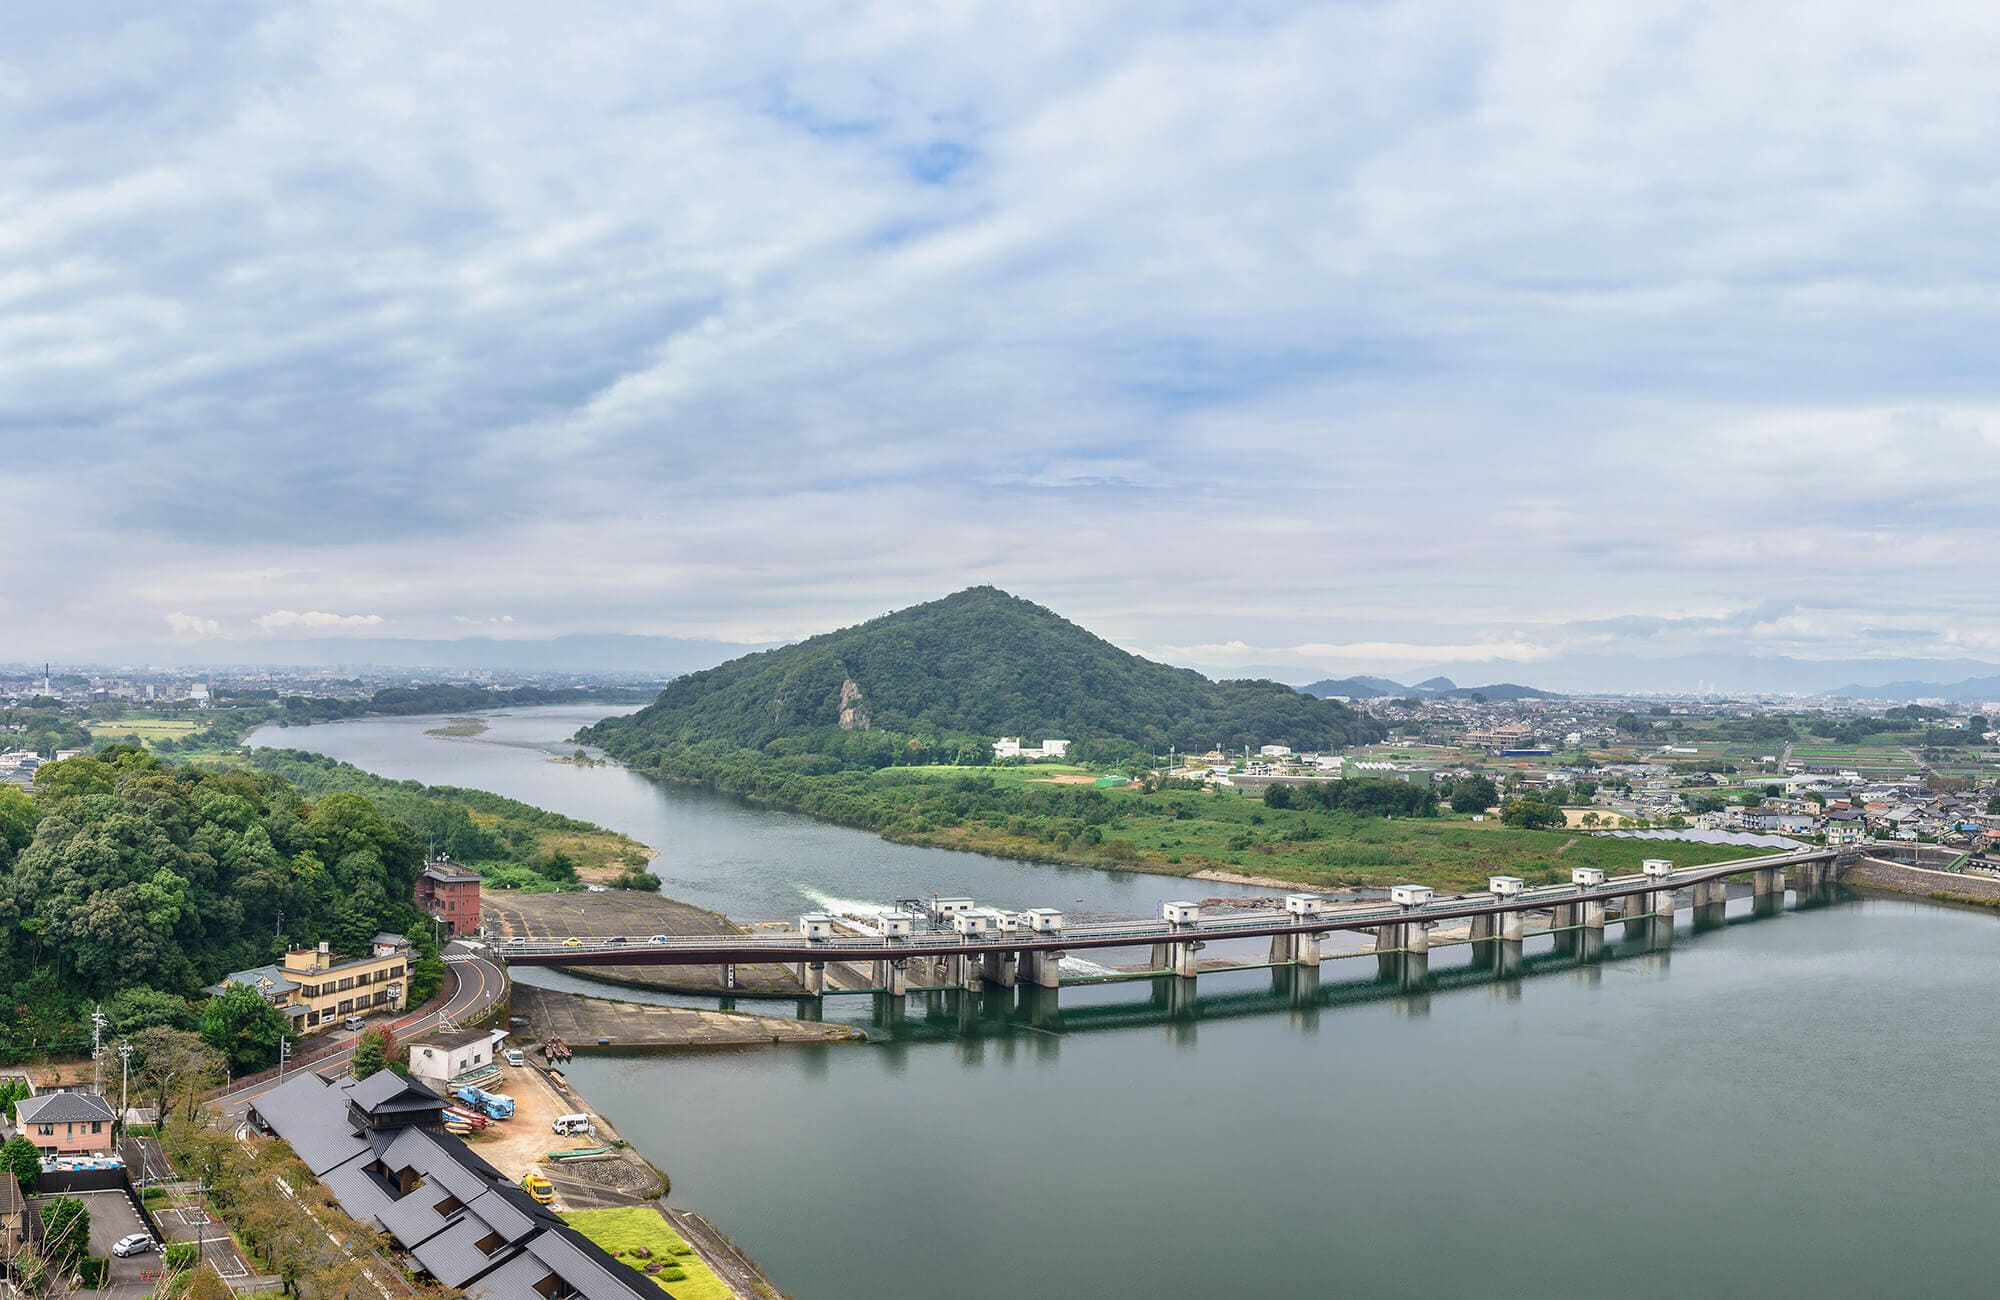 Inuyama city's view from Inuyama Castle